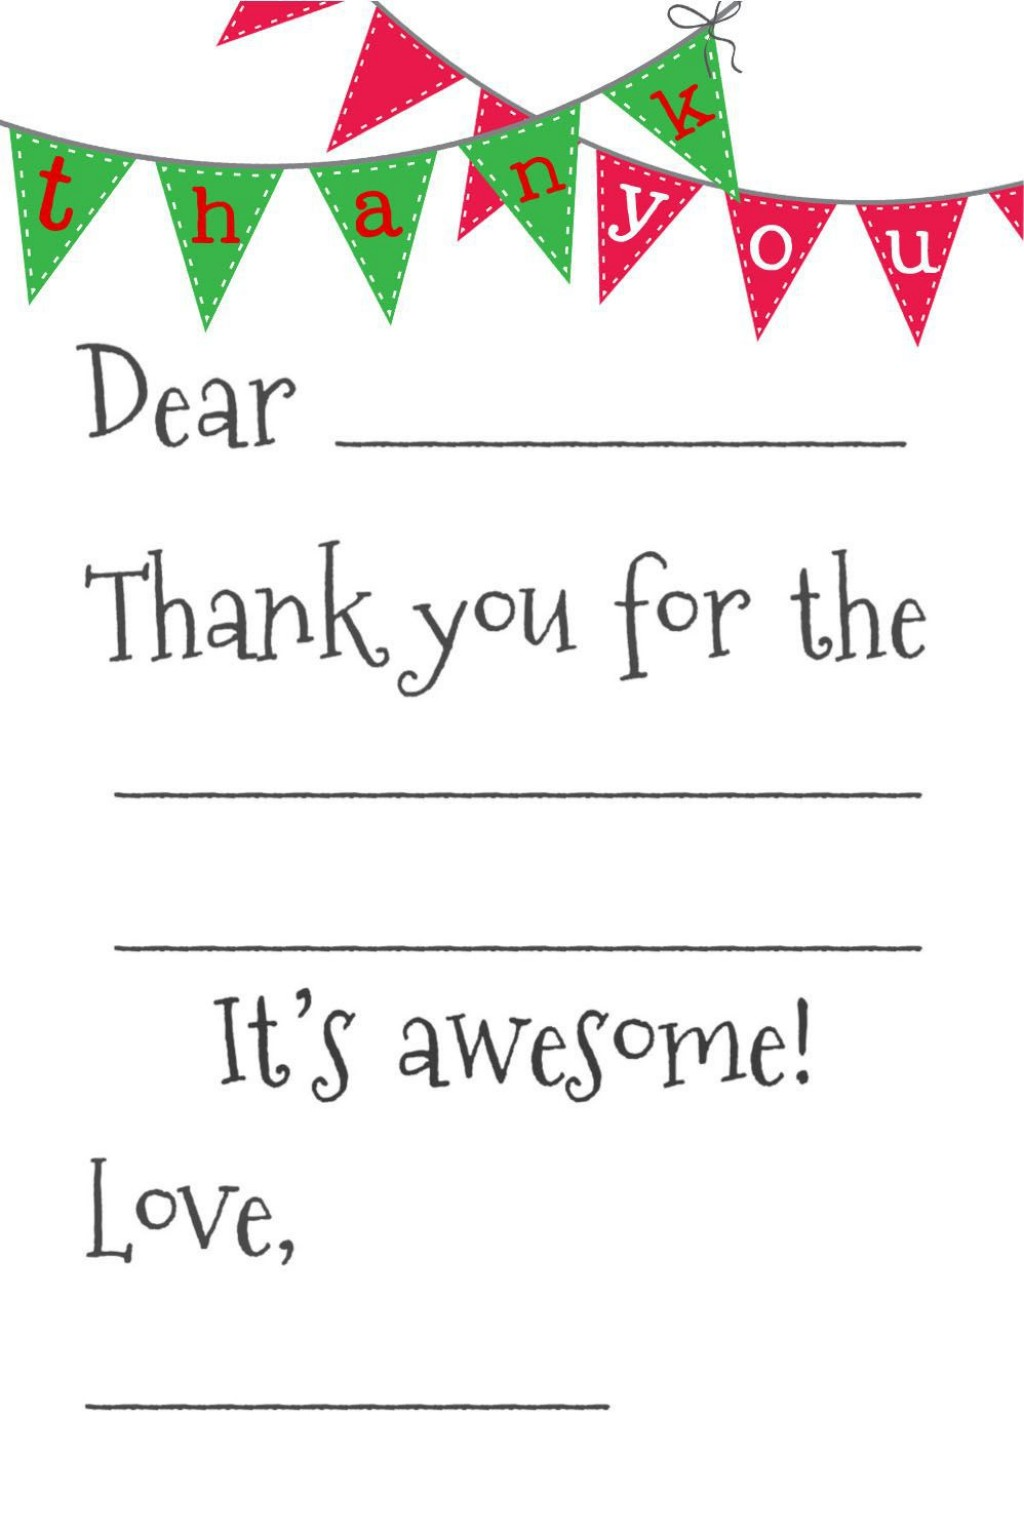 003 Archaicawful Christma Thank You Note Template Free Design  Letter CardLarge